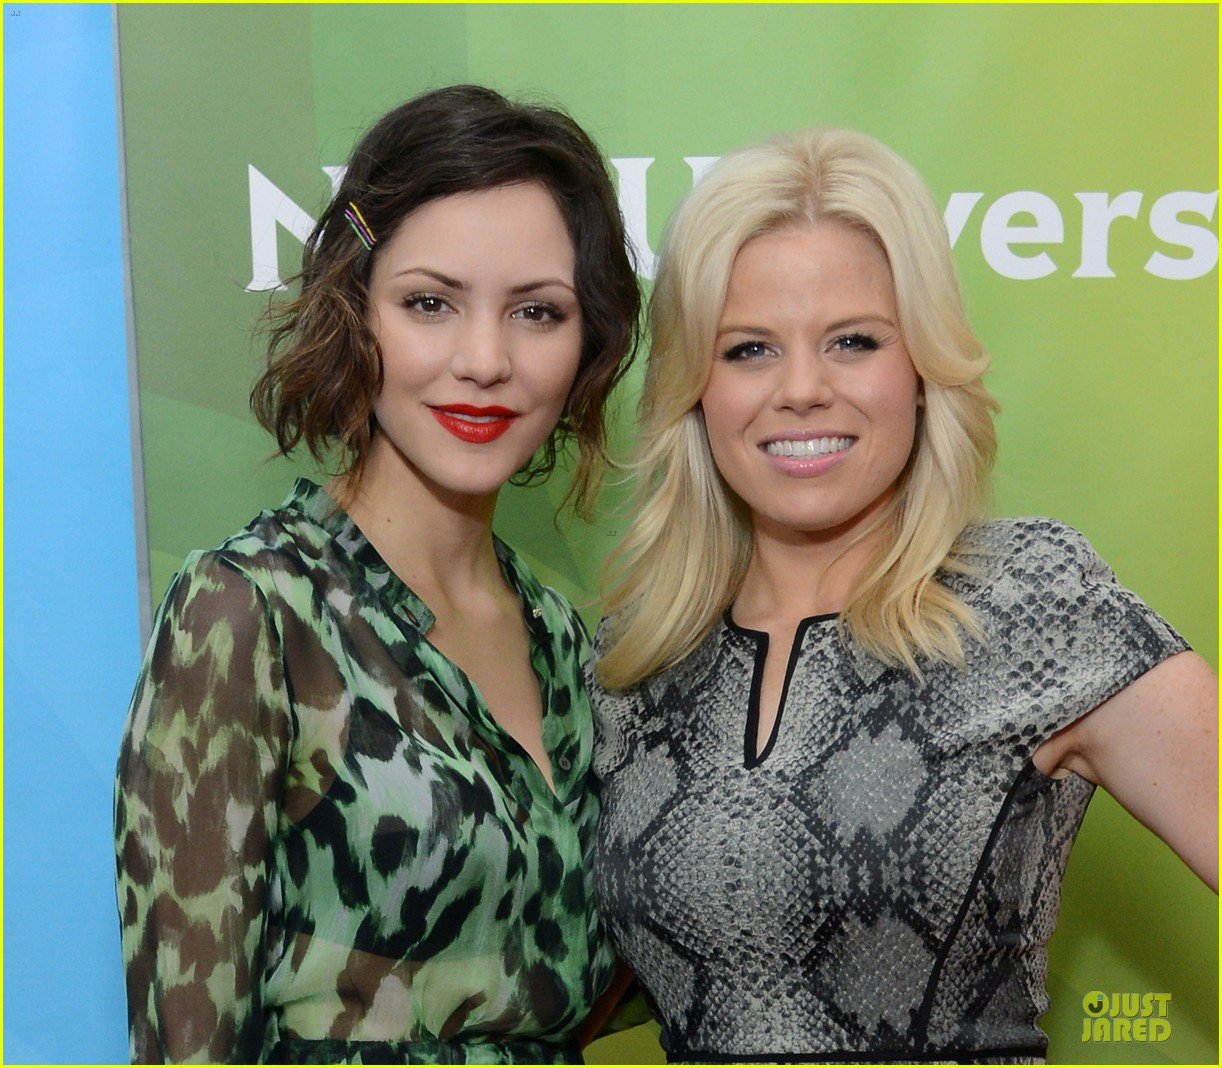 katharine mcphee & megan hilty smash tca tour 02